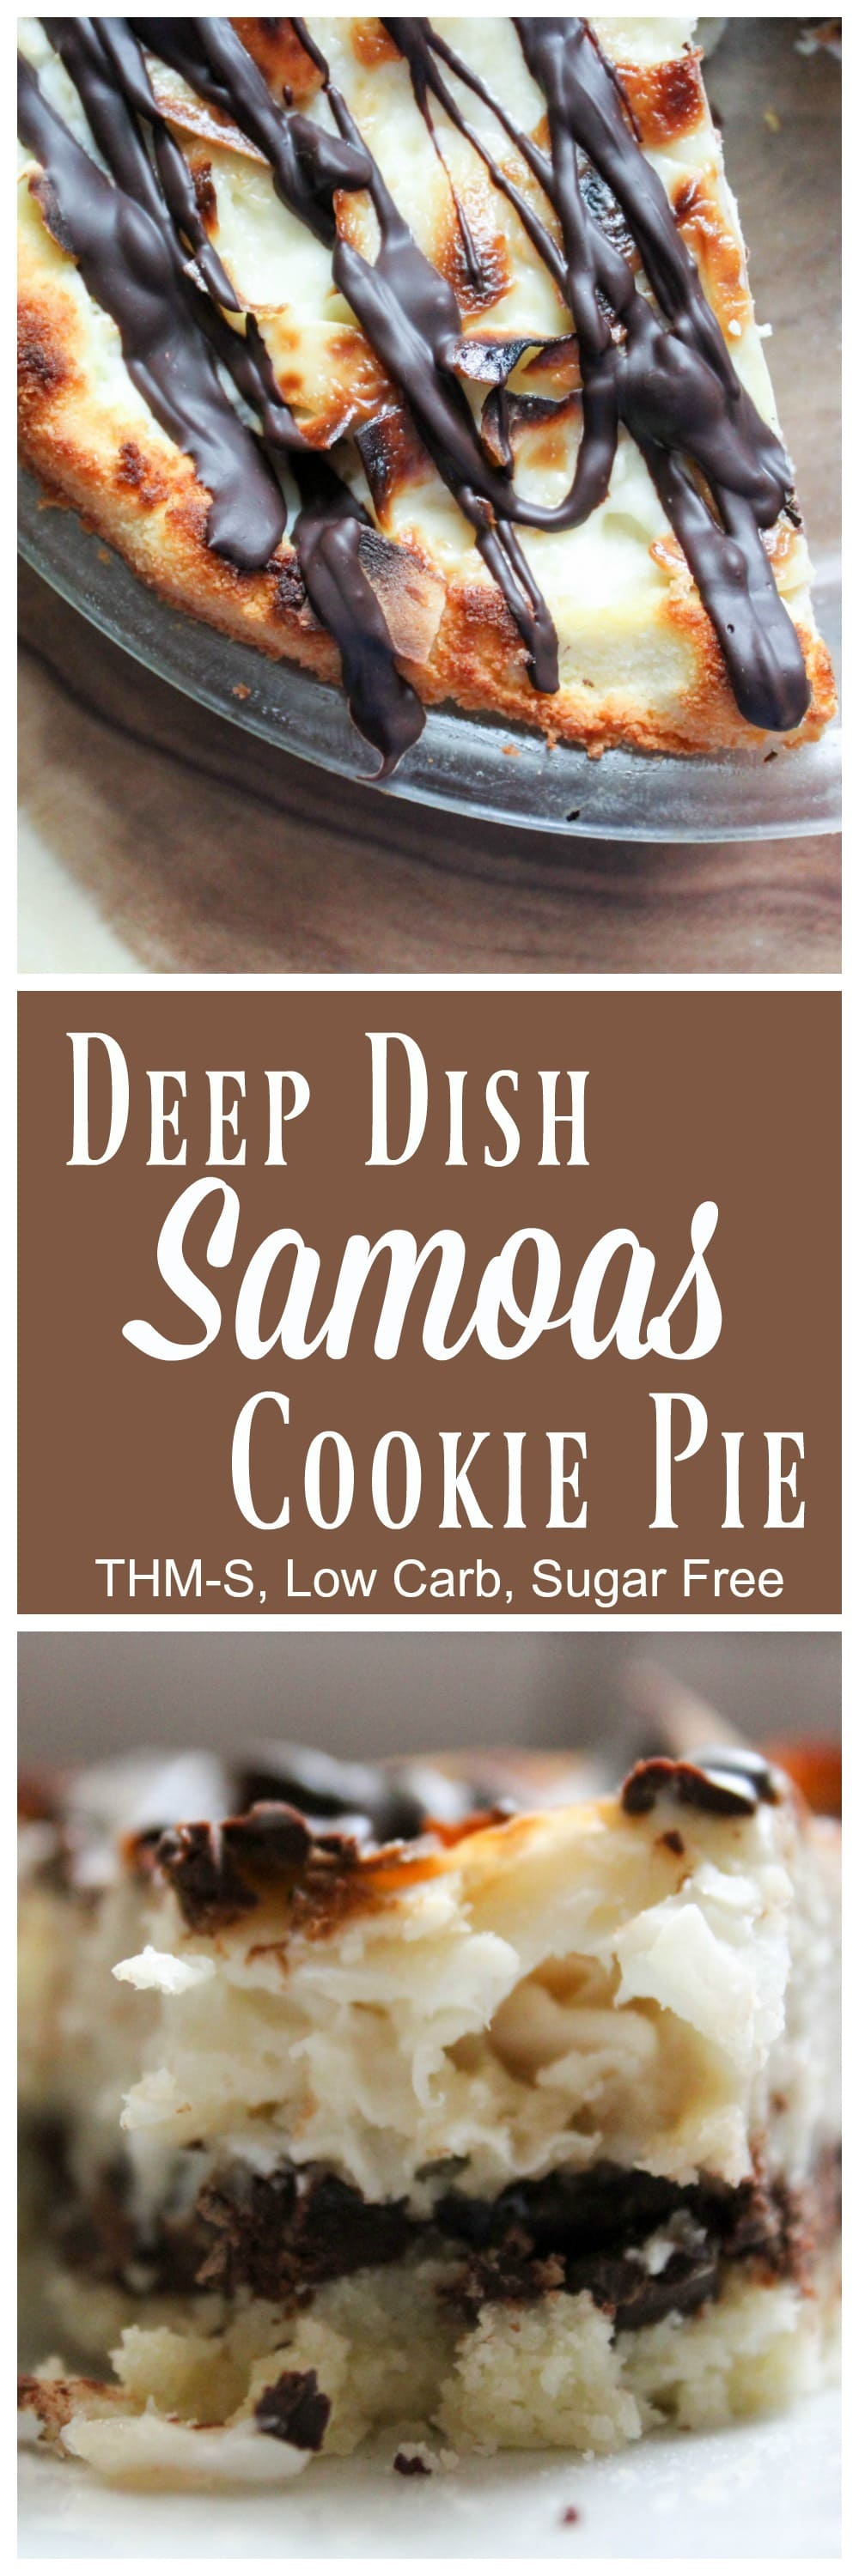 Deep Dish Samoas Cookie Pie (THM-S, Low Carb, Sugar Free)